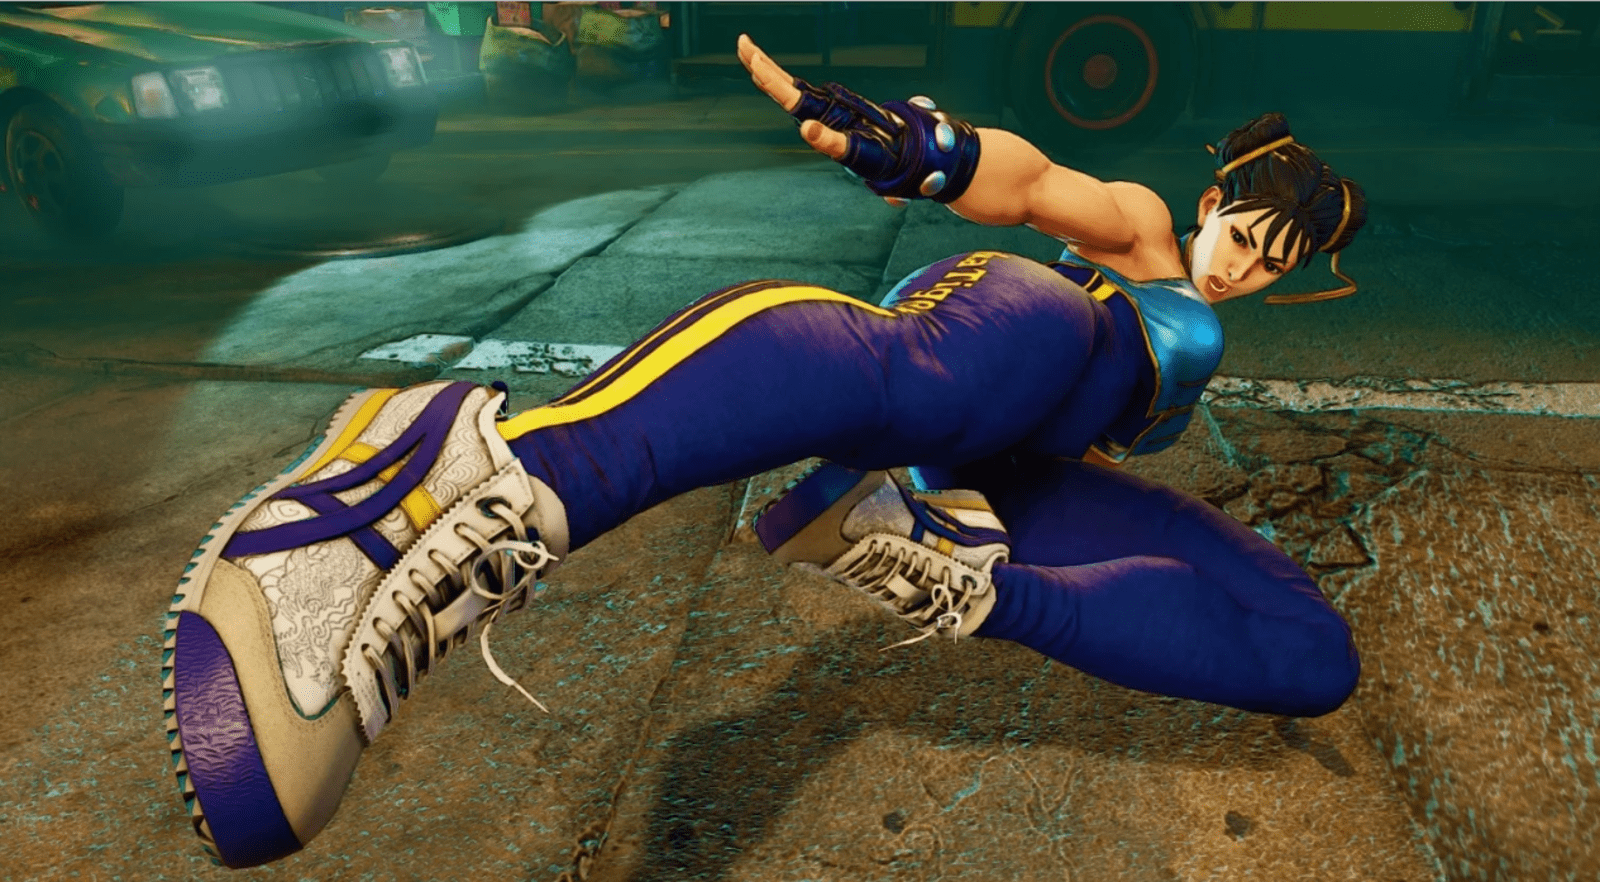 Chun-Li (Street Fighter) sko